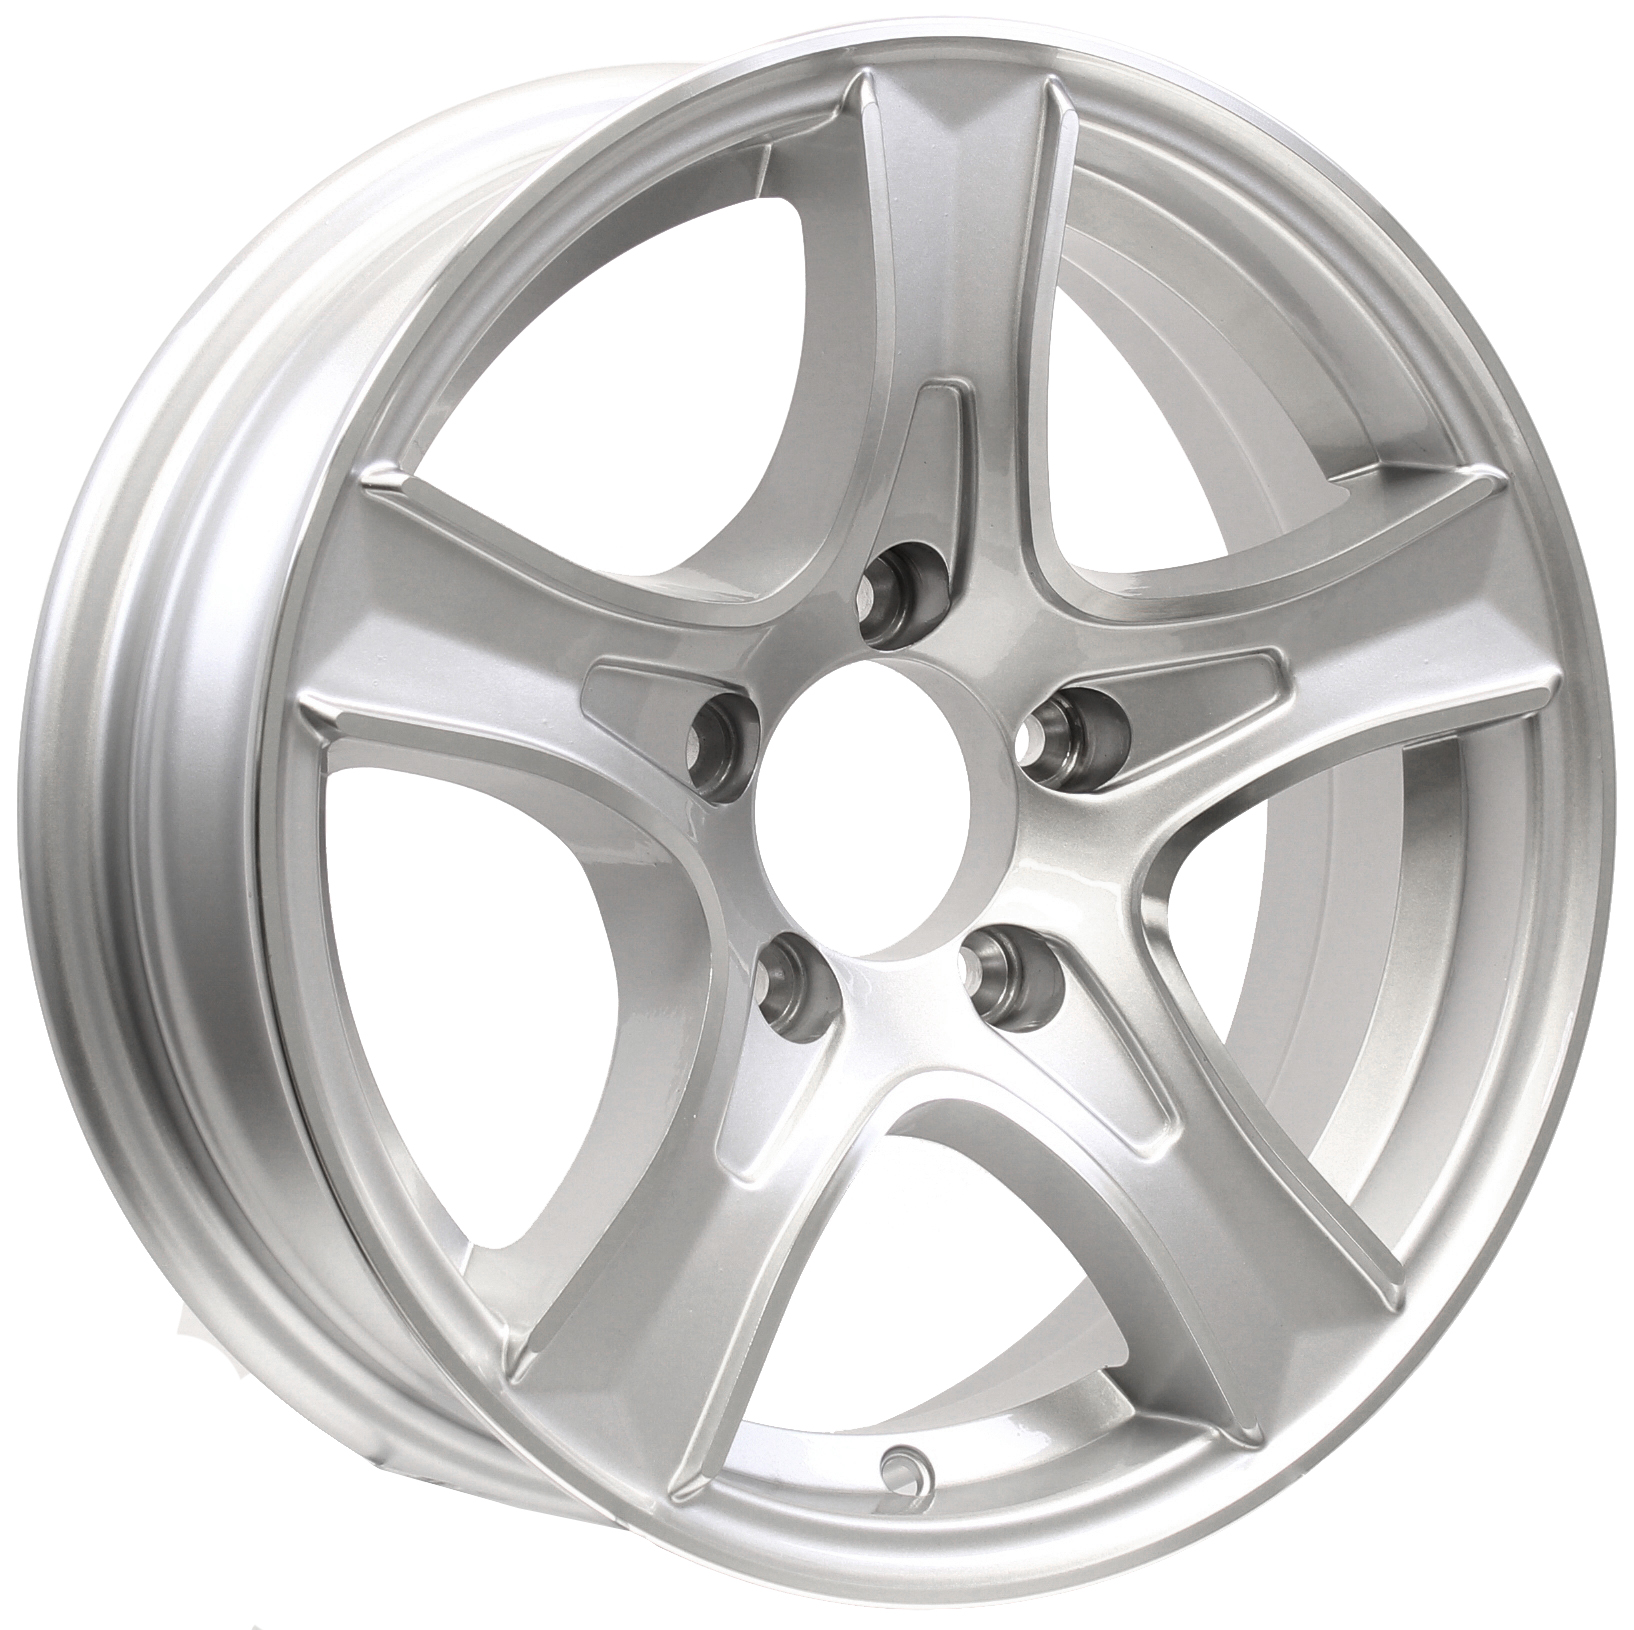 Thoroughbred 15x5 5-Lug Silver Aluminum Trailer Wheel Image